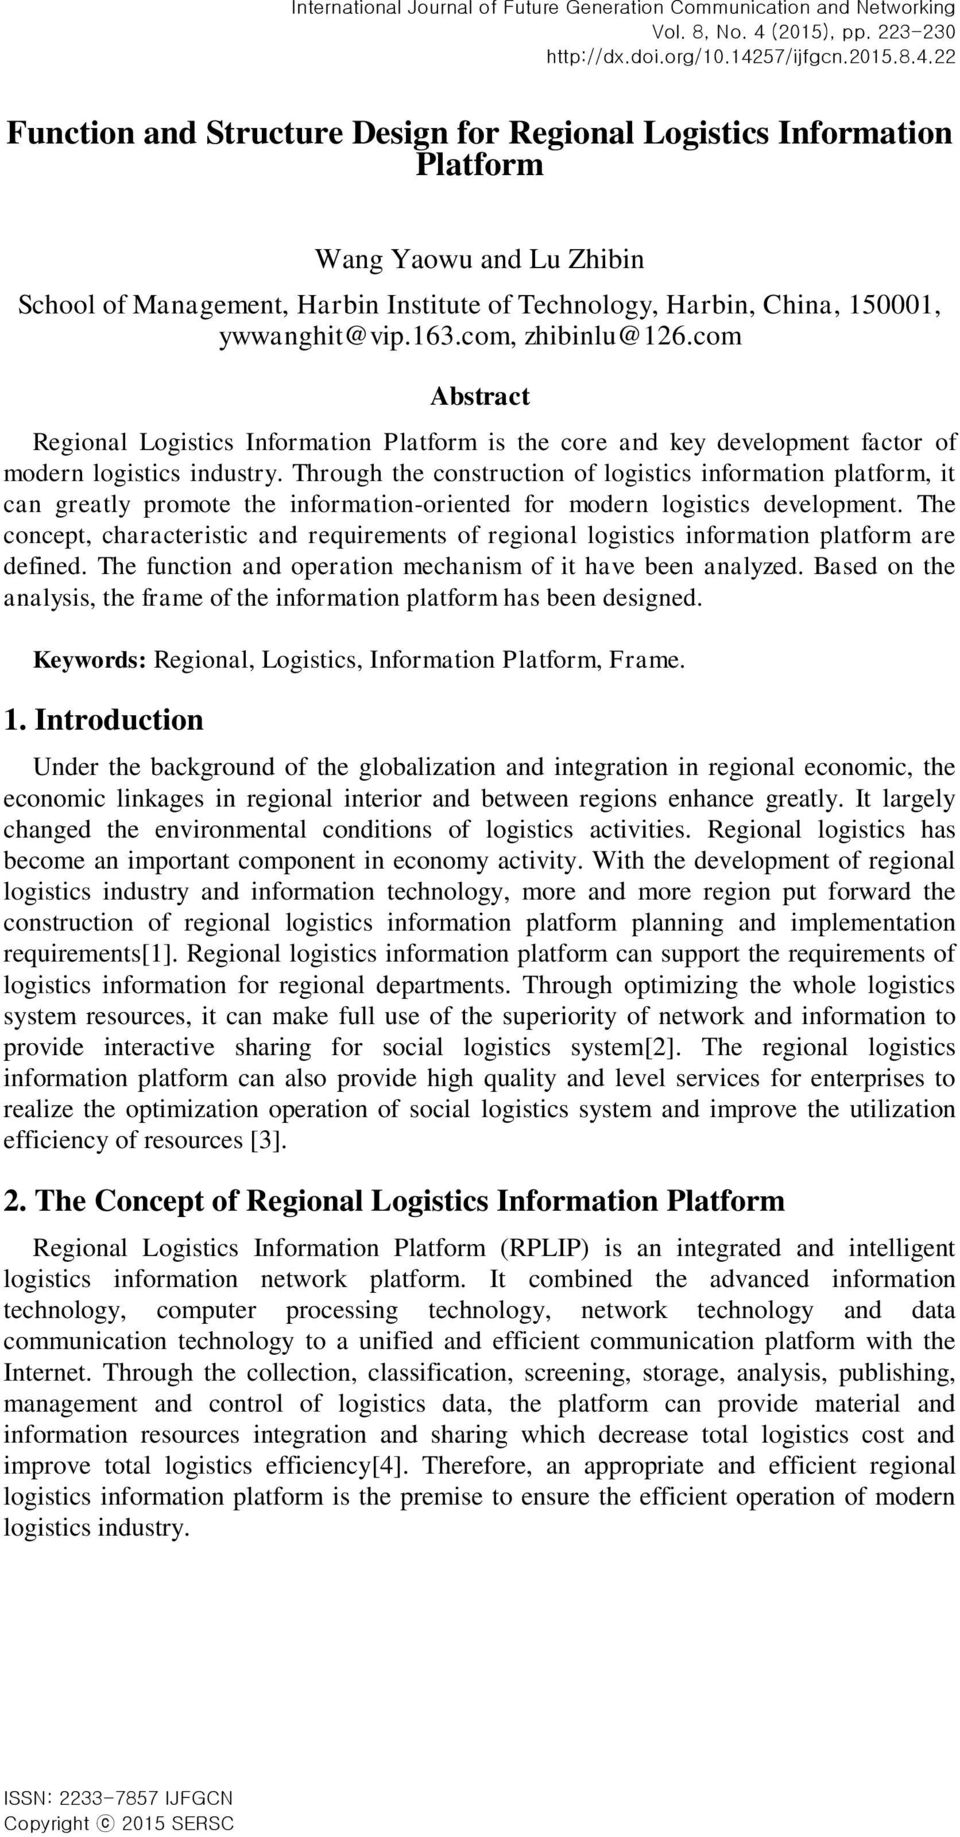 22 Function and Structure Design for Regional Logistics Information Platform Wang Yaowu and Lu Zhibin School of Management, Harbin Institute of Technology, Harbin, China, 150001, ywwanghit@vip.163.